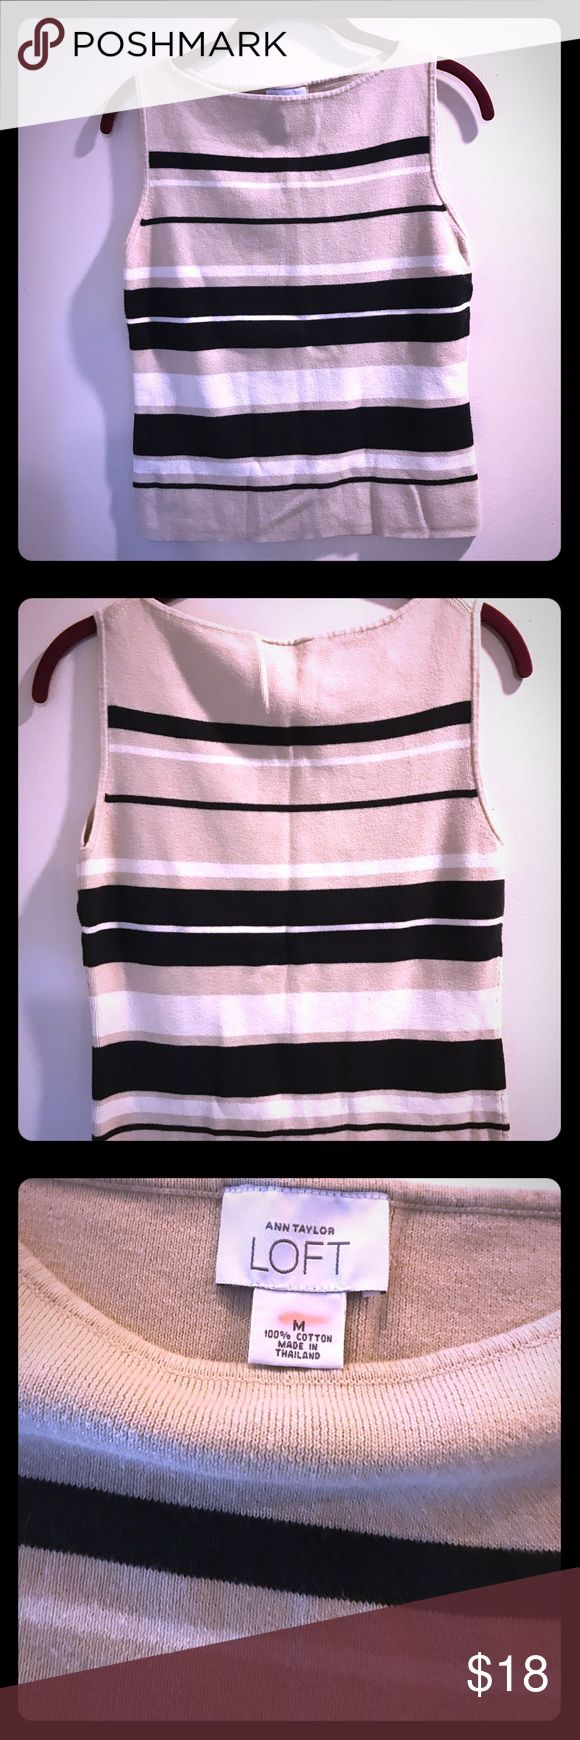 Anne Taylor Loft Sleeveless Beige & Black Stripes This shirt is so classic and can be paired with dress pants or a pair of jeans with some heels! Size M LOFT Sweaters Crew & Scoop Necks